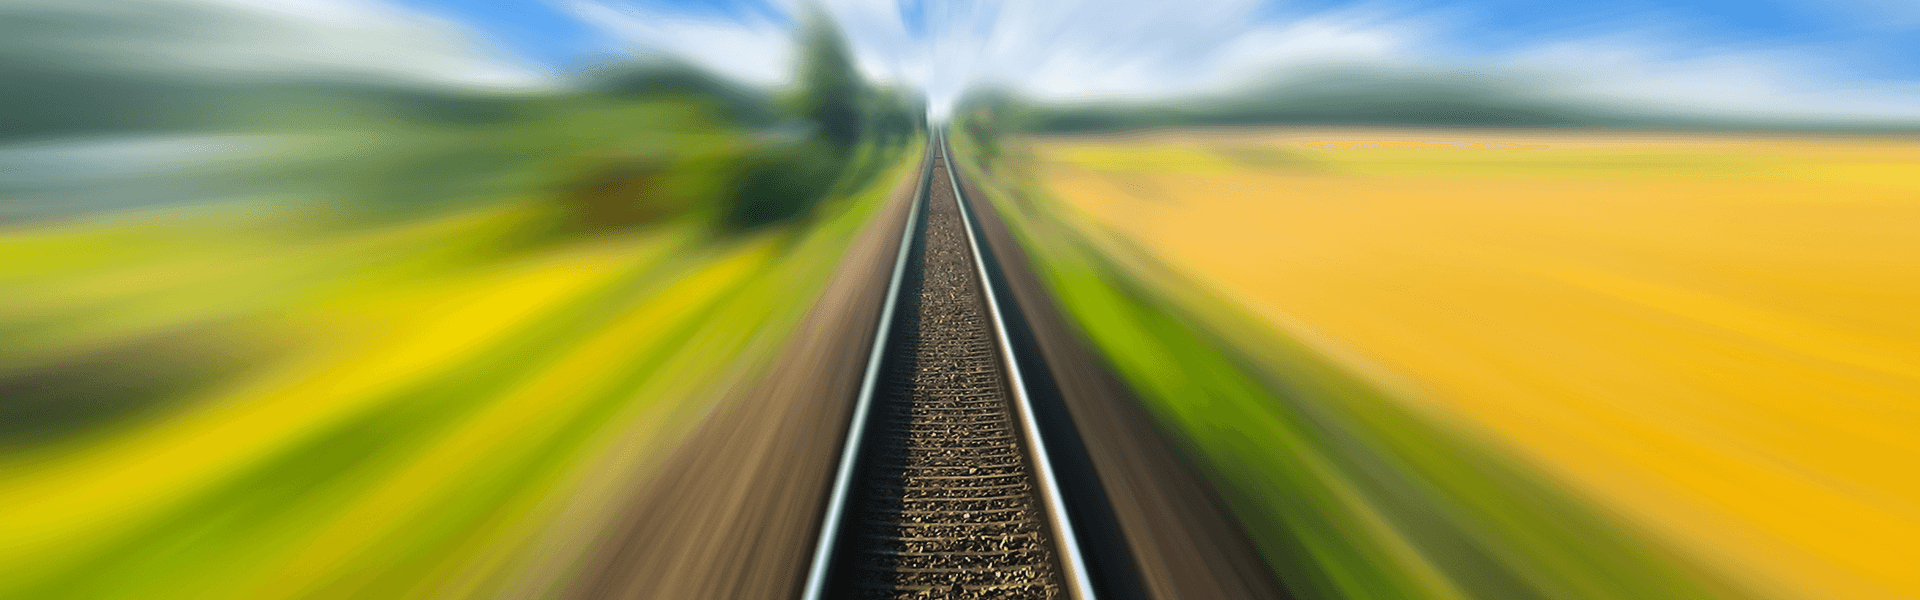 Railway track blurred